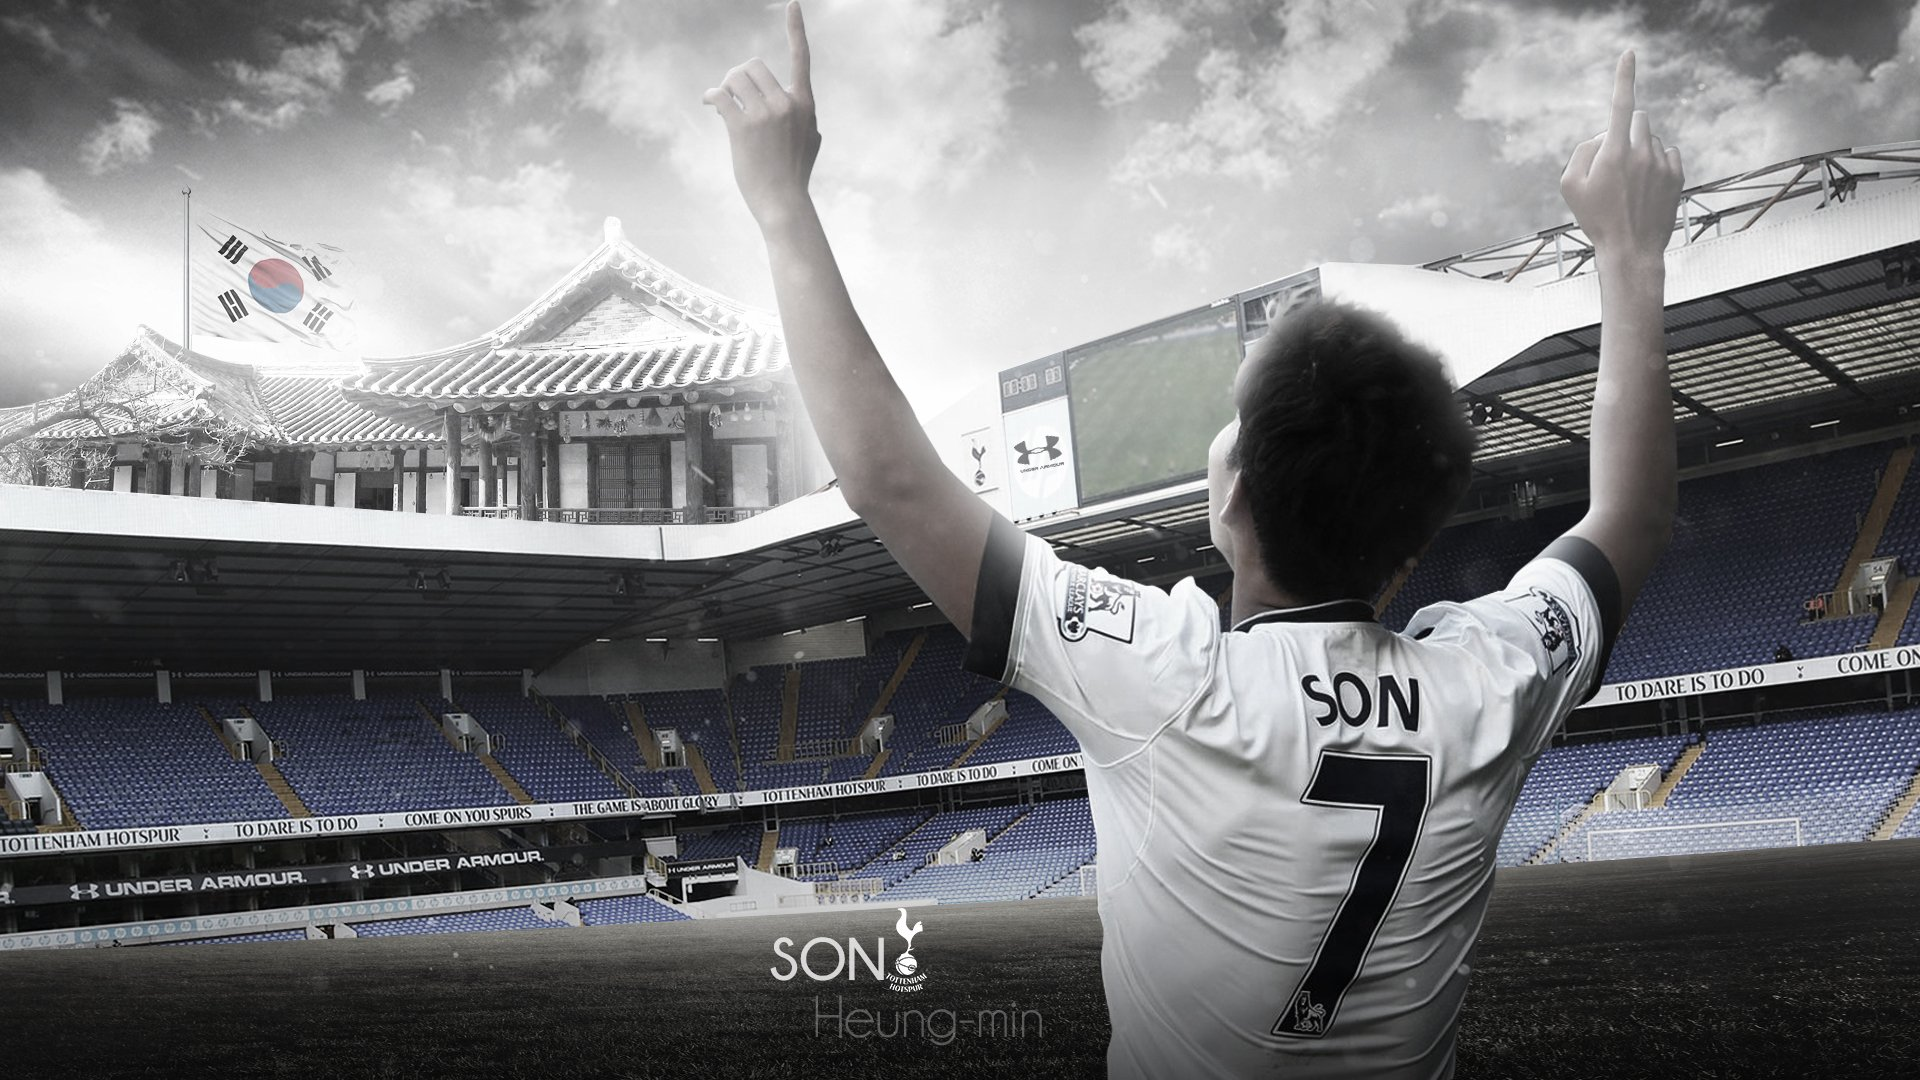 Son Heung Min Hd Wallpaper Background Image 1920x1080 Id 994916 Wallpaper Abyss